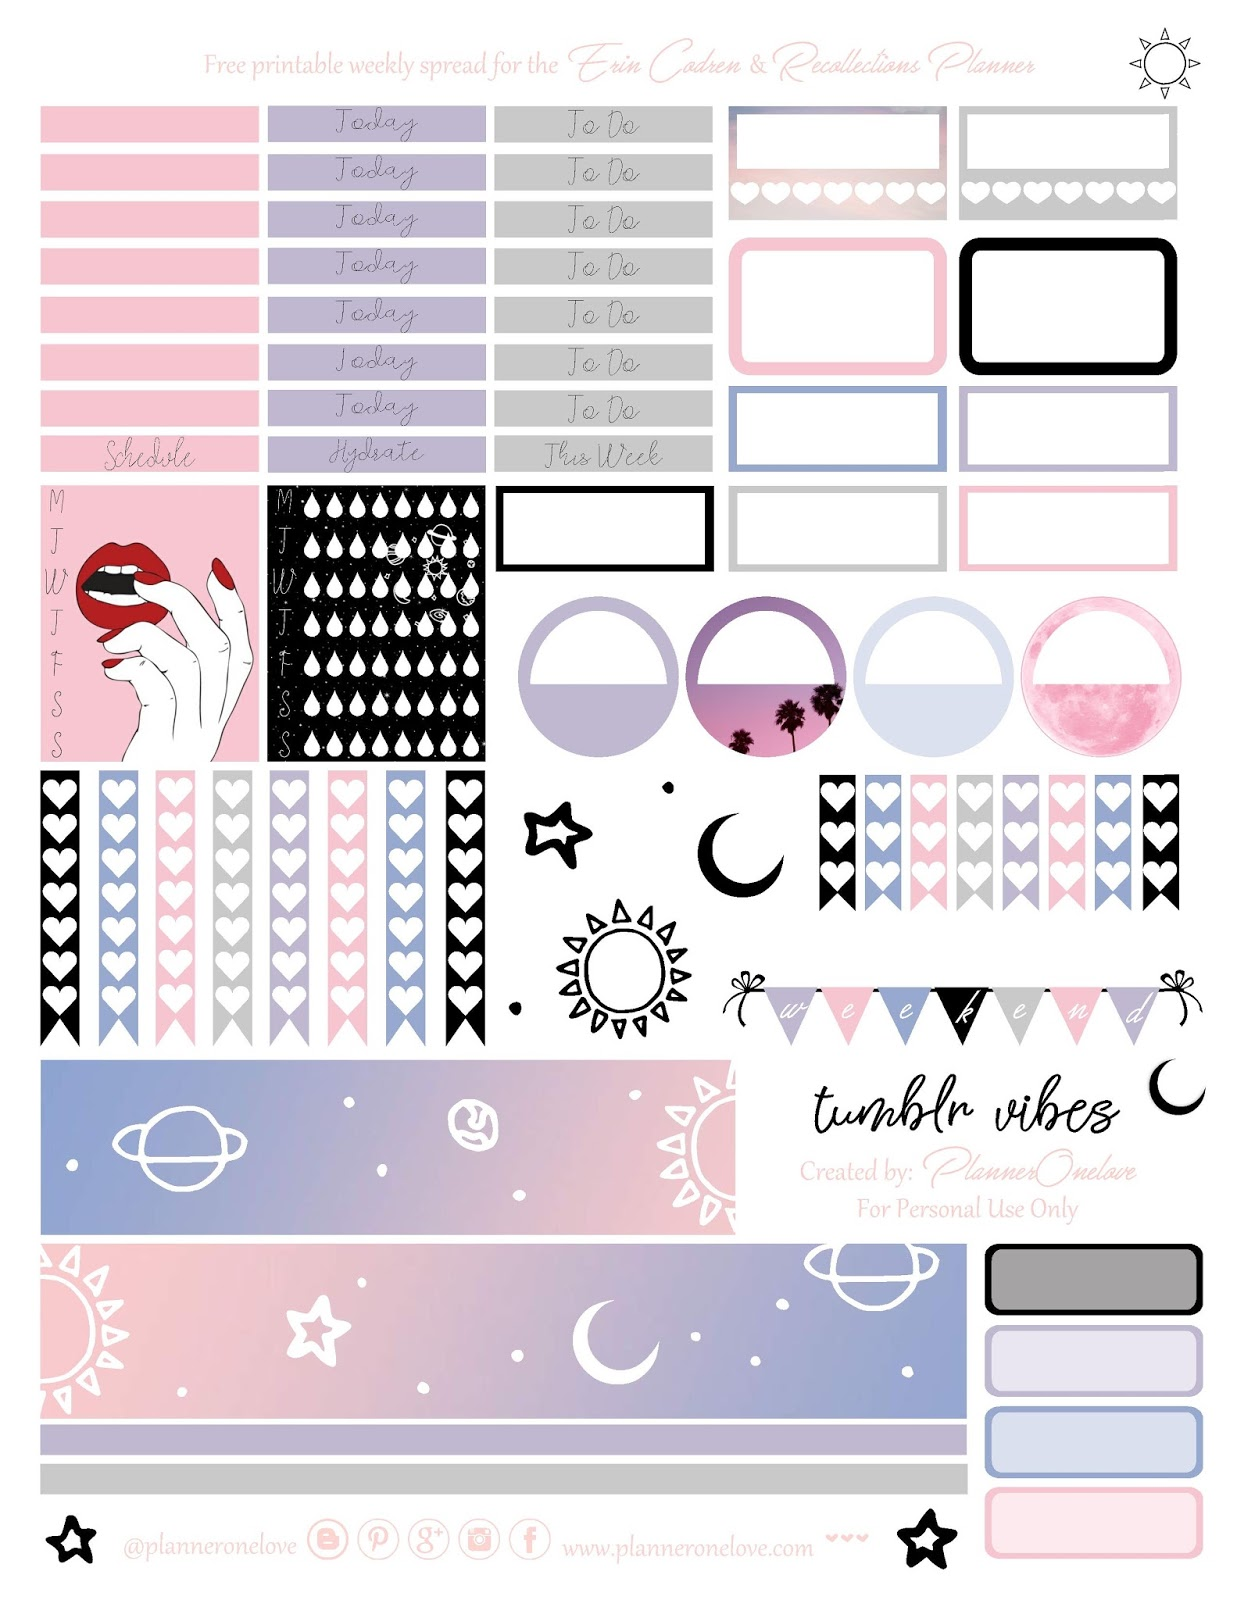 If You Post It On Instagram Please Tag Me. I Would Love To See How You Used  This Kit. U0026 If You Have Any Issues Downloading Or Printing The Kits Lmk In  The ...